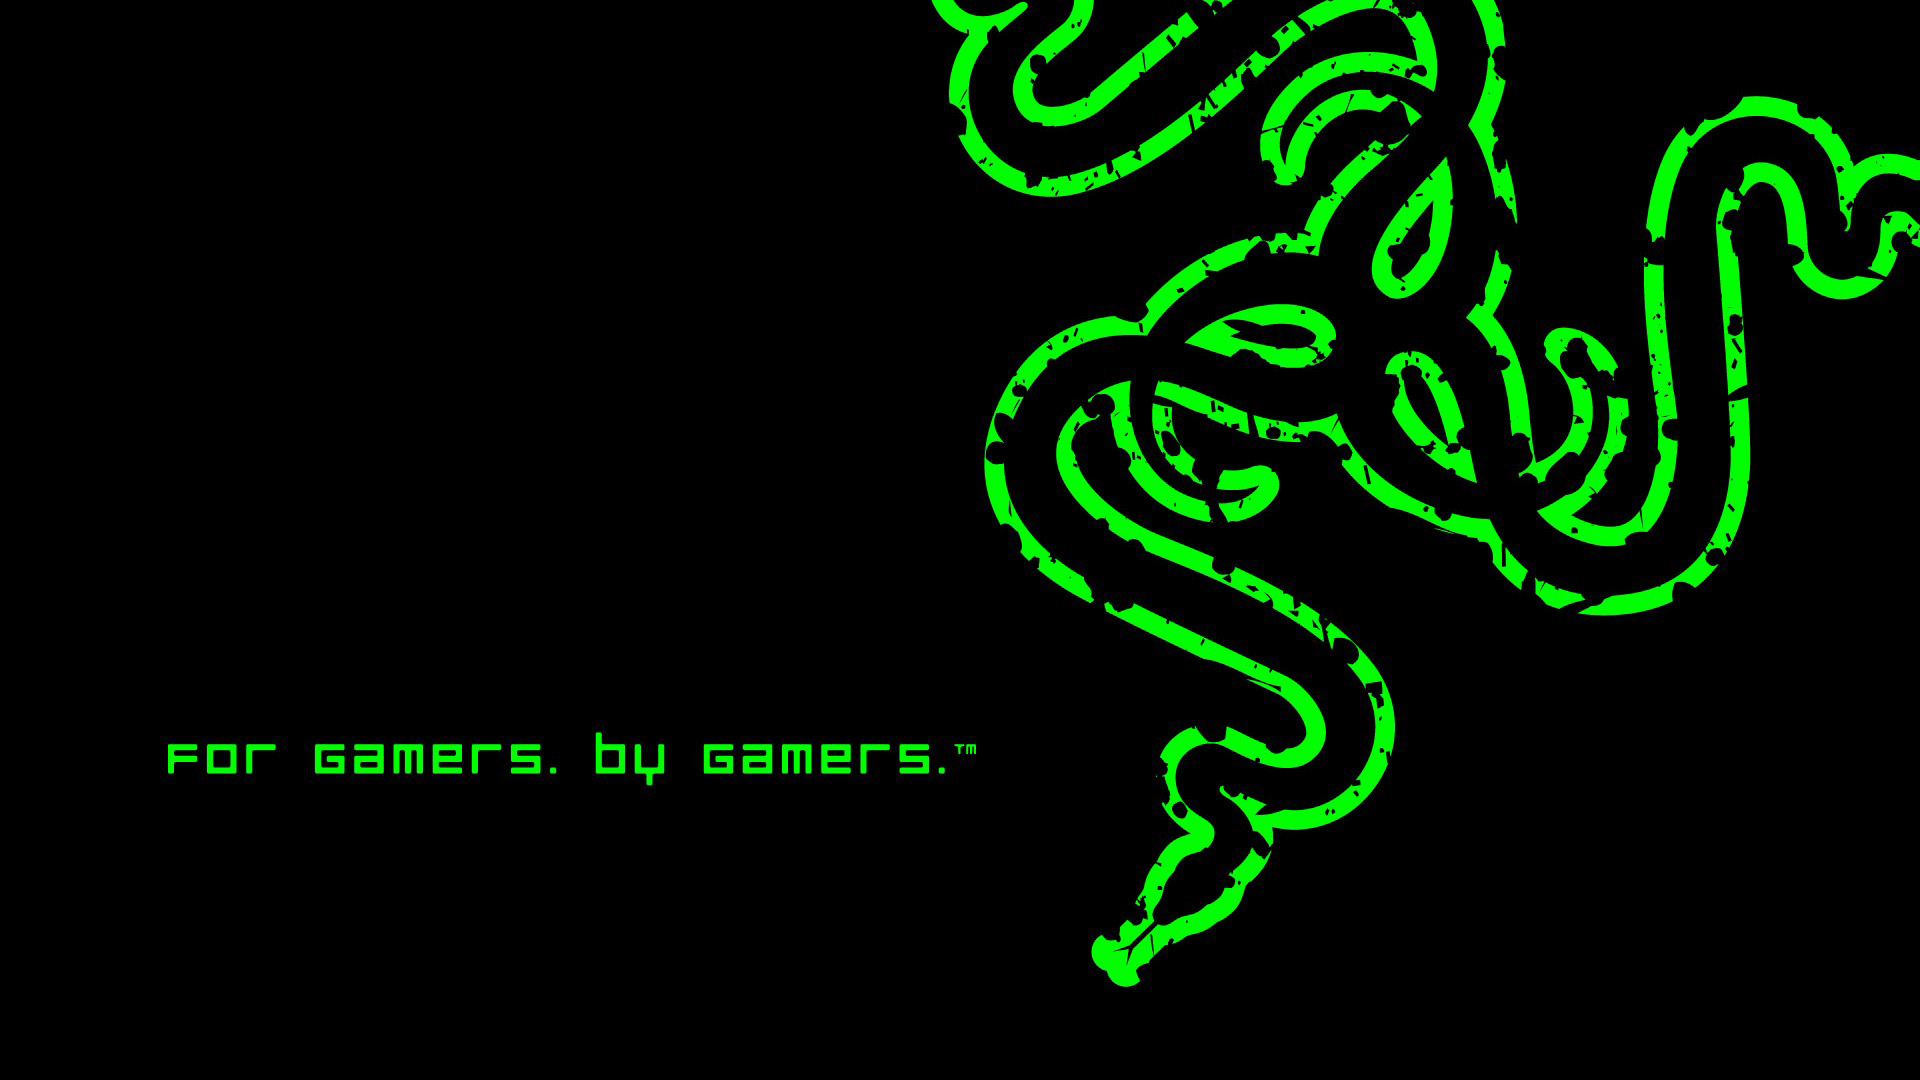 razer-logo-for-gamers-by-gamers-1920x1080